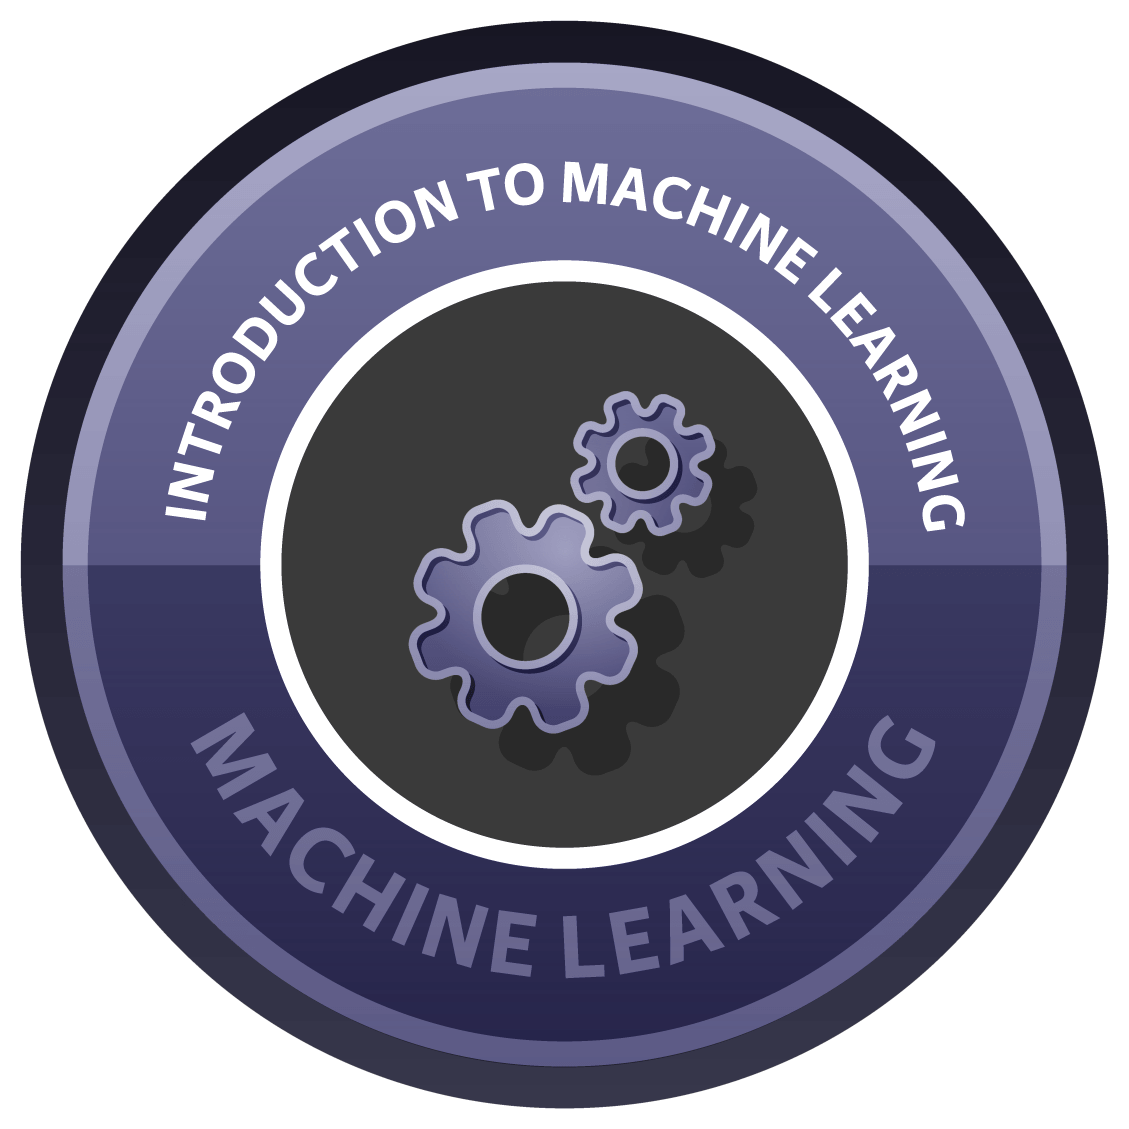 Introduction to Machine Learning course image